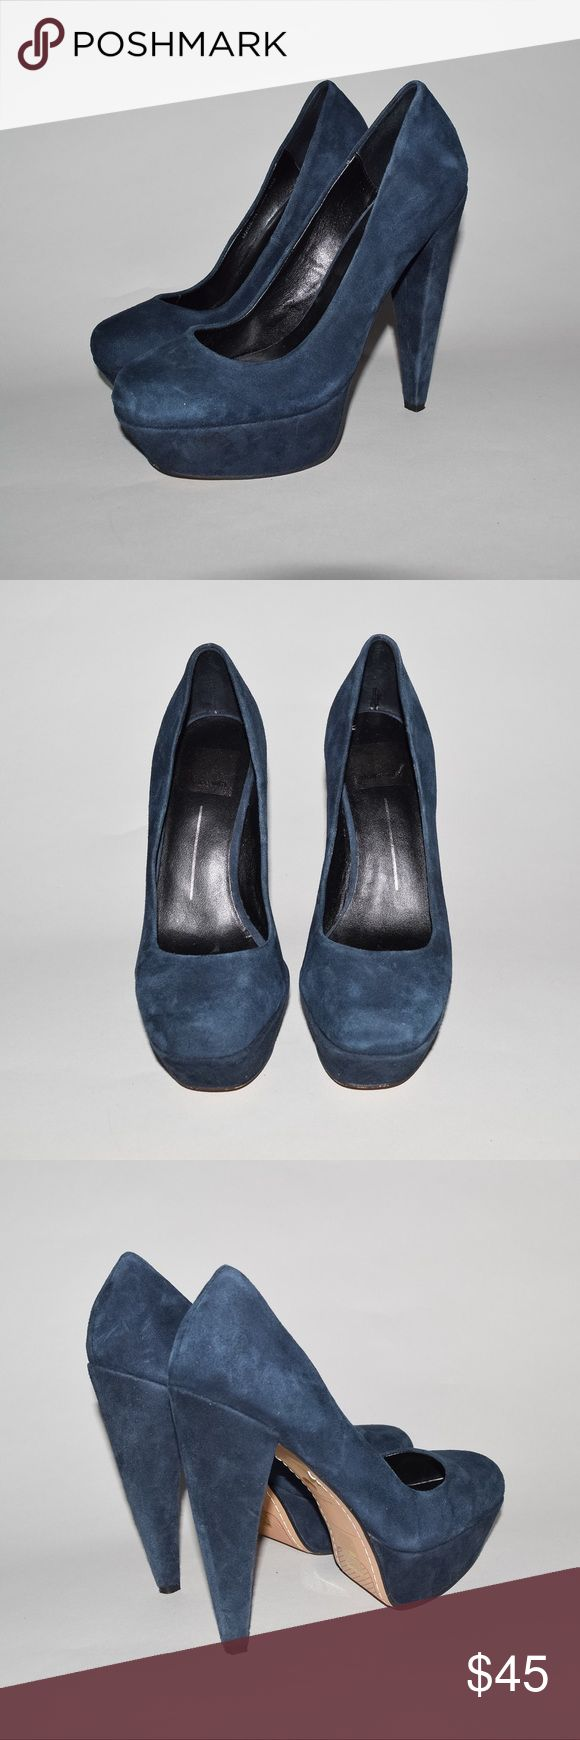 Dolce Vita Gretchen Suede Platform Pumps Heels Brand: Dolce Vita Item name: Gretchen Suede Platform Pump Color: Dark Blue Condition: This is a pre-owned item. They are in great condition with no stains, holes, rips, etc. Comes from a smoke free household Size: Women's 6 Dolce Vita Shoes Heels